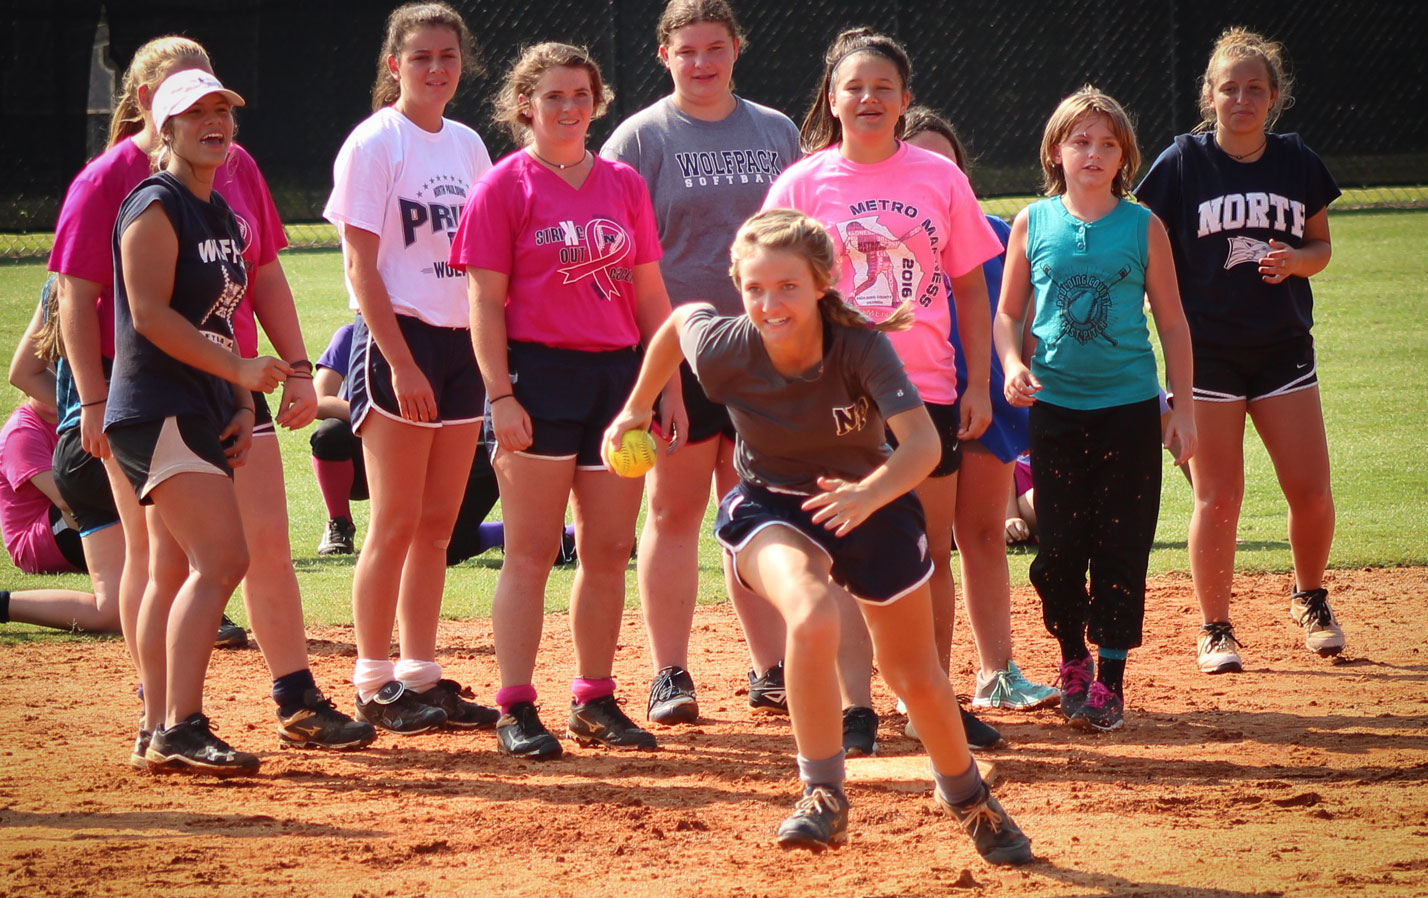 2017 Softball Summer Camp 2017